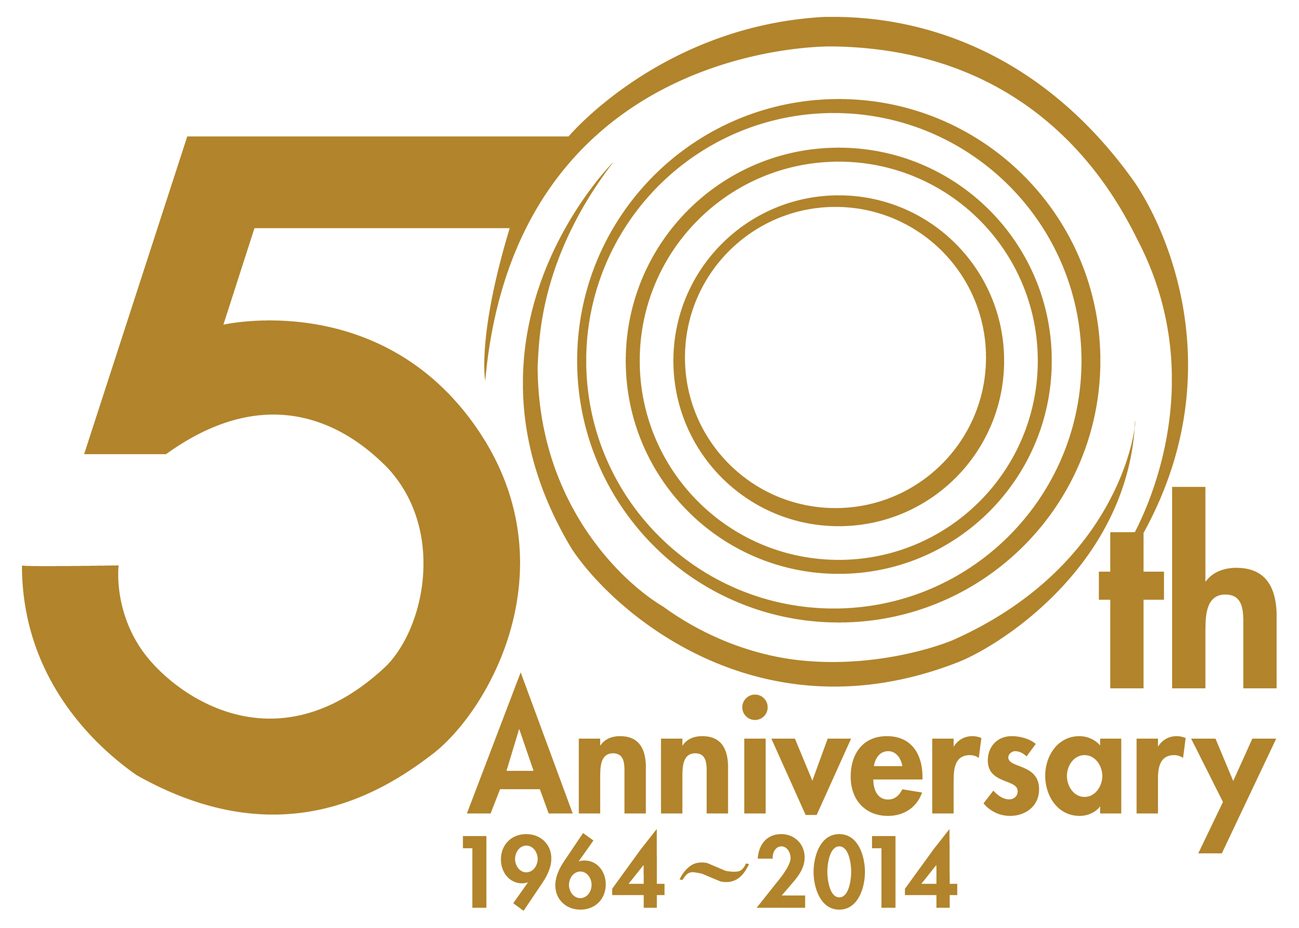 50th Anniversary Clip Art 18 Pics In Our Database For 50th